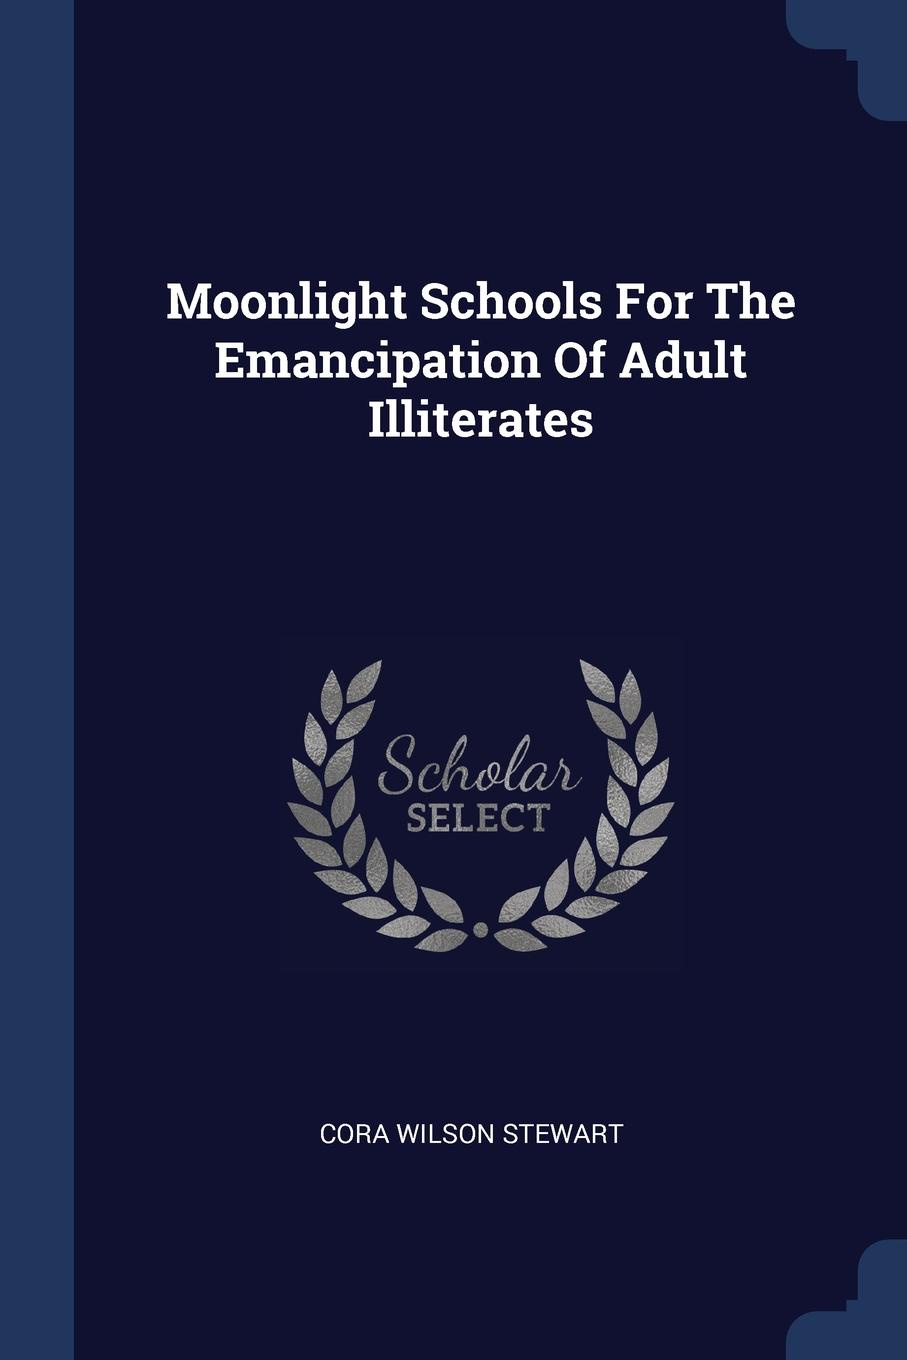 Moonlight Schools For The Emancipation Of Adult Illiterates